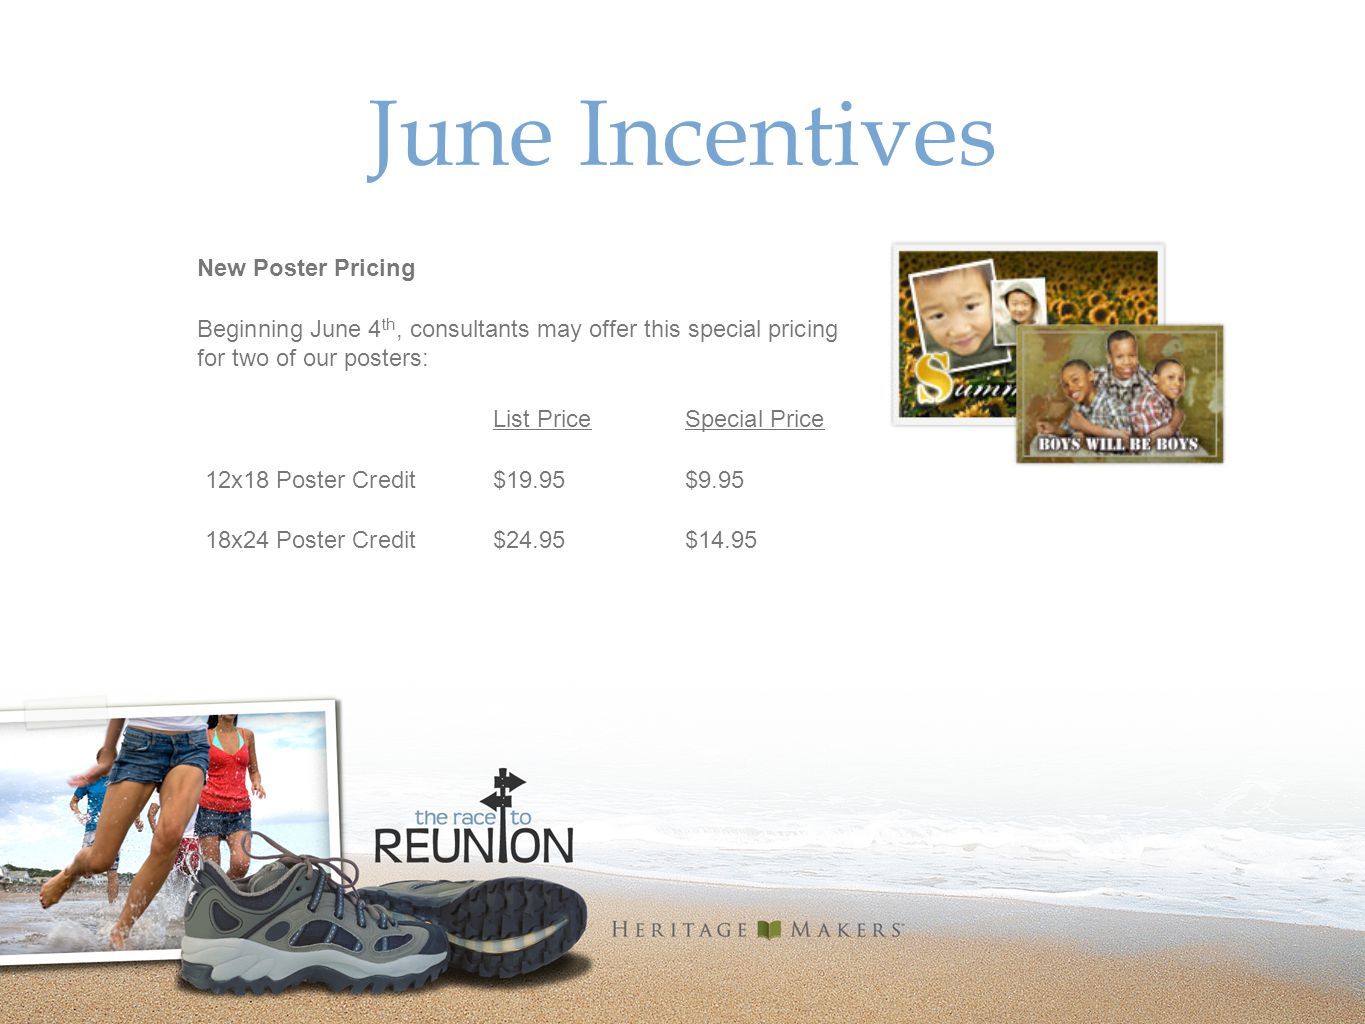 June Incentives New Poster Pricing Beginning June 4 th, consultants may offer this special pricing for two of our posters: List PriceSpecial Price 12x18 Poster Credit$19.95$9.95 18x24 Poster Credit$24.95$14.95